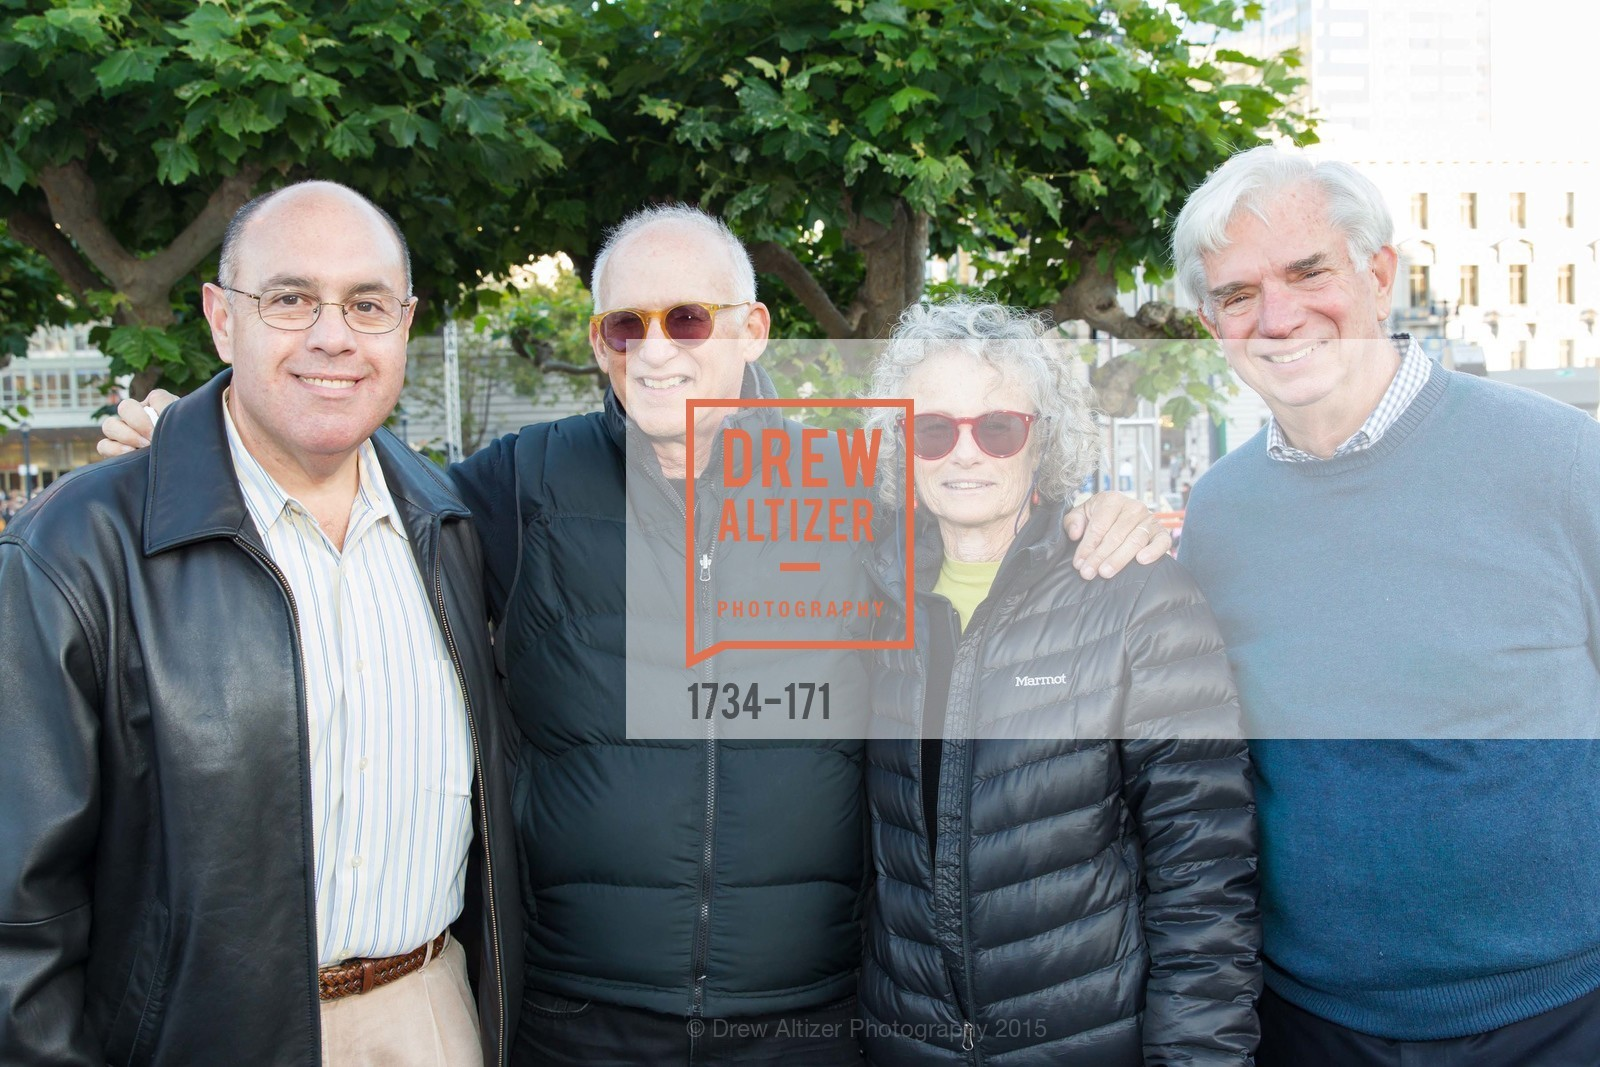 Robert Vergara, Richard Bordow, Liz Bordow, Jim Briggs, San Francisco City Hall Centennial Celebration, Civic Center Plaza, June 18th, 2015,Drew Altizer, Drew Altizer Photography, full-service event agency, private events, San Francisco photographer, photographer California